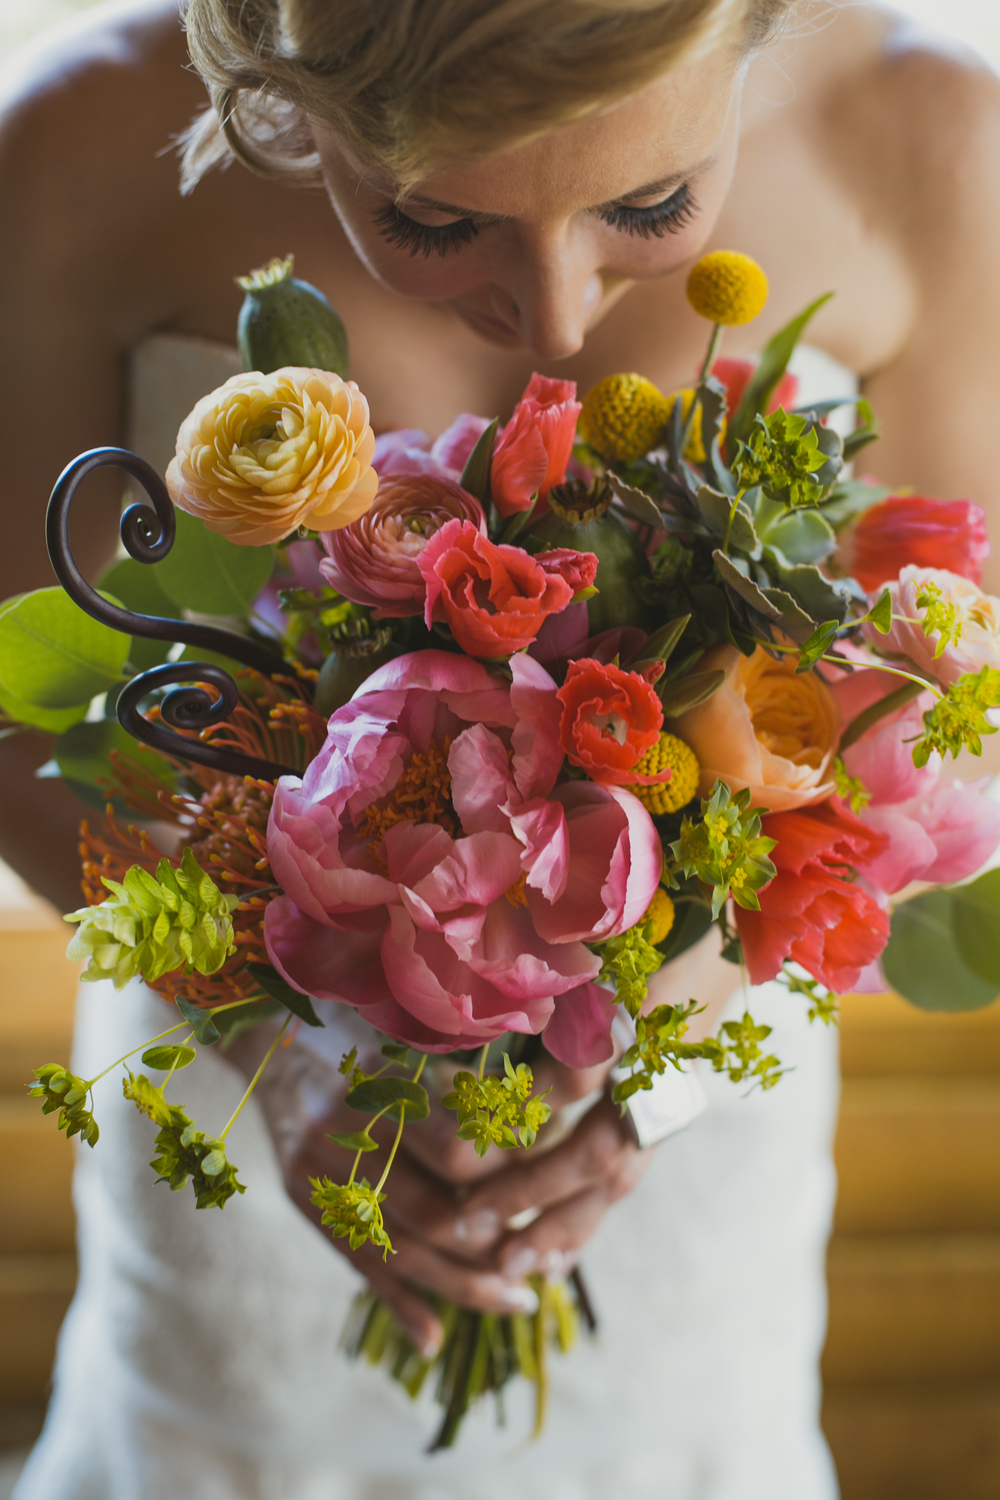 Even if the Juliet is tucked in and not the main focus...it adds the perfect soft color to a bright and bold bouquet.